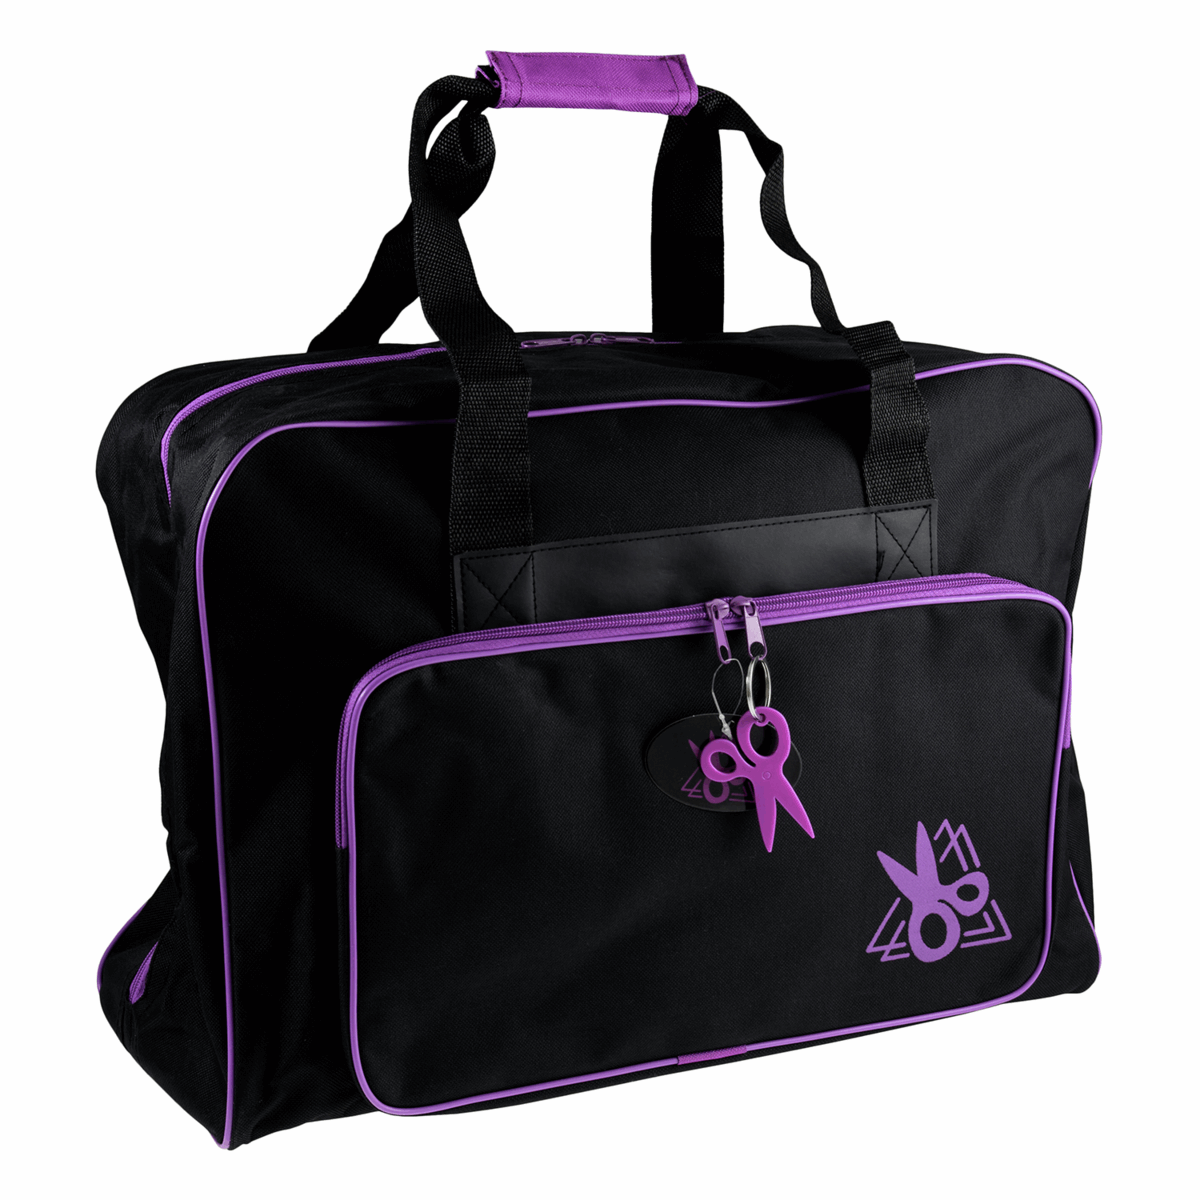 Picture of Sewing Machine Bag: Black/Purple